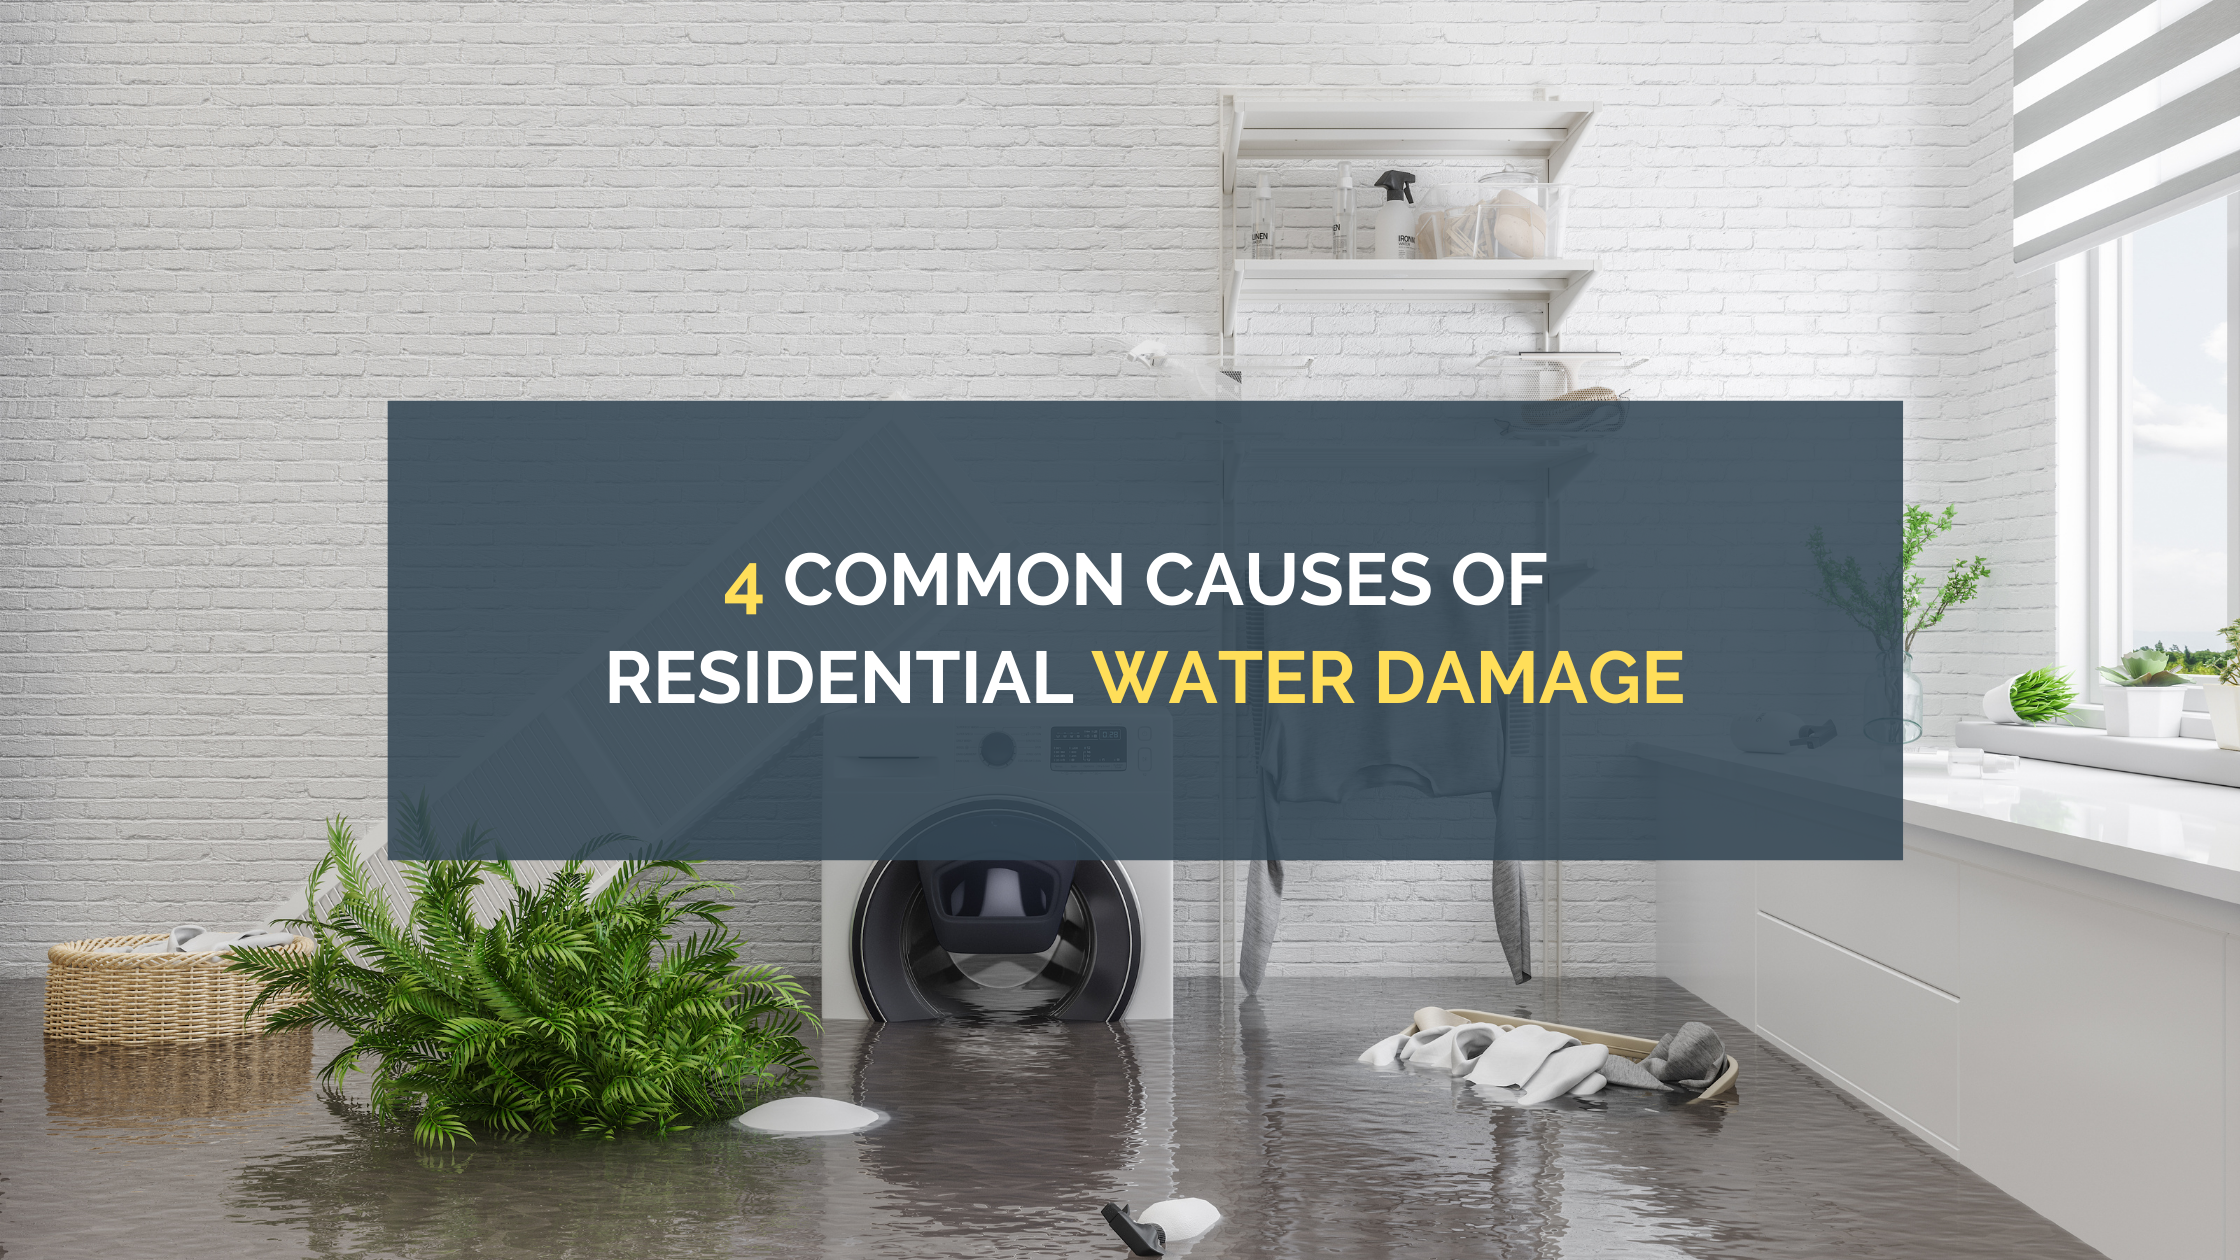 4 Common Causes of Residential Water Damage